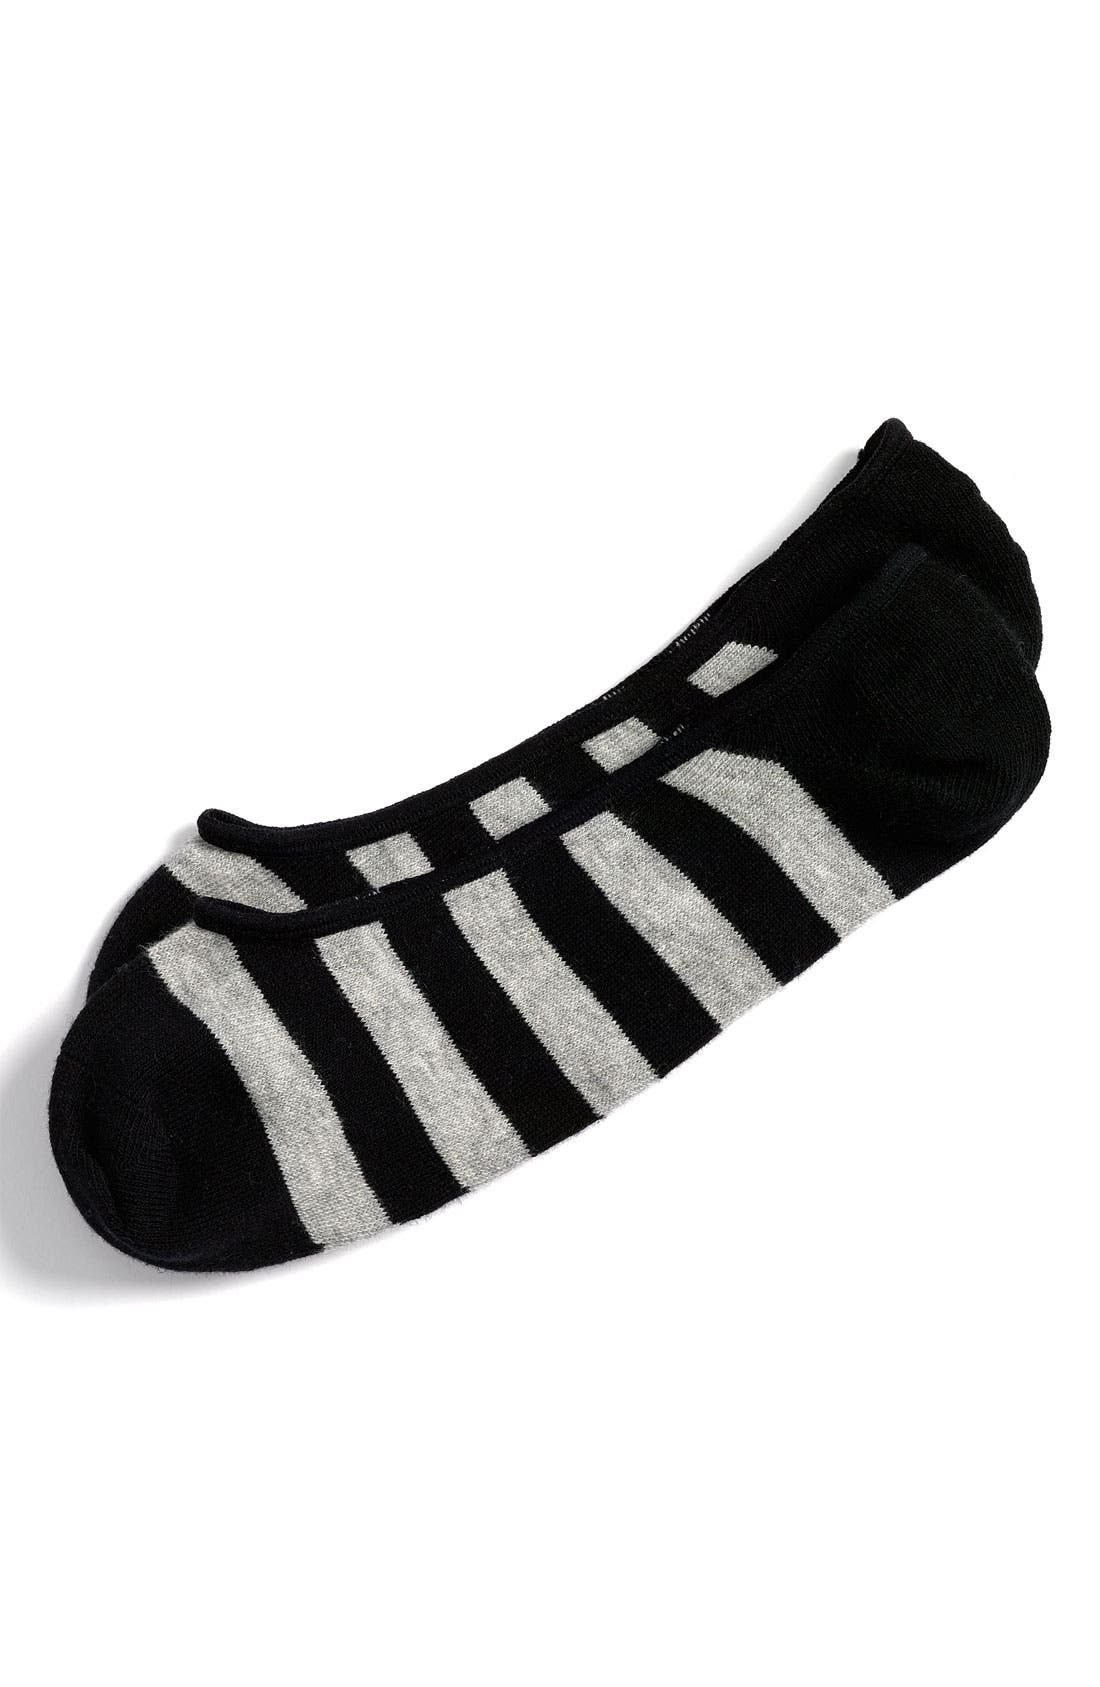 Alternate Image 1 Selected - 1901 'No Show' Liner Socks